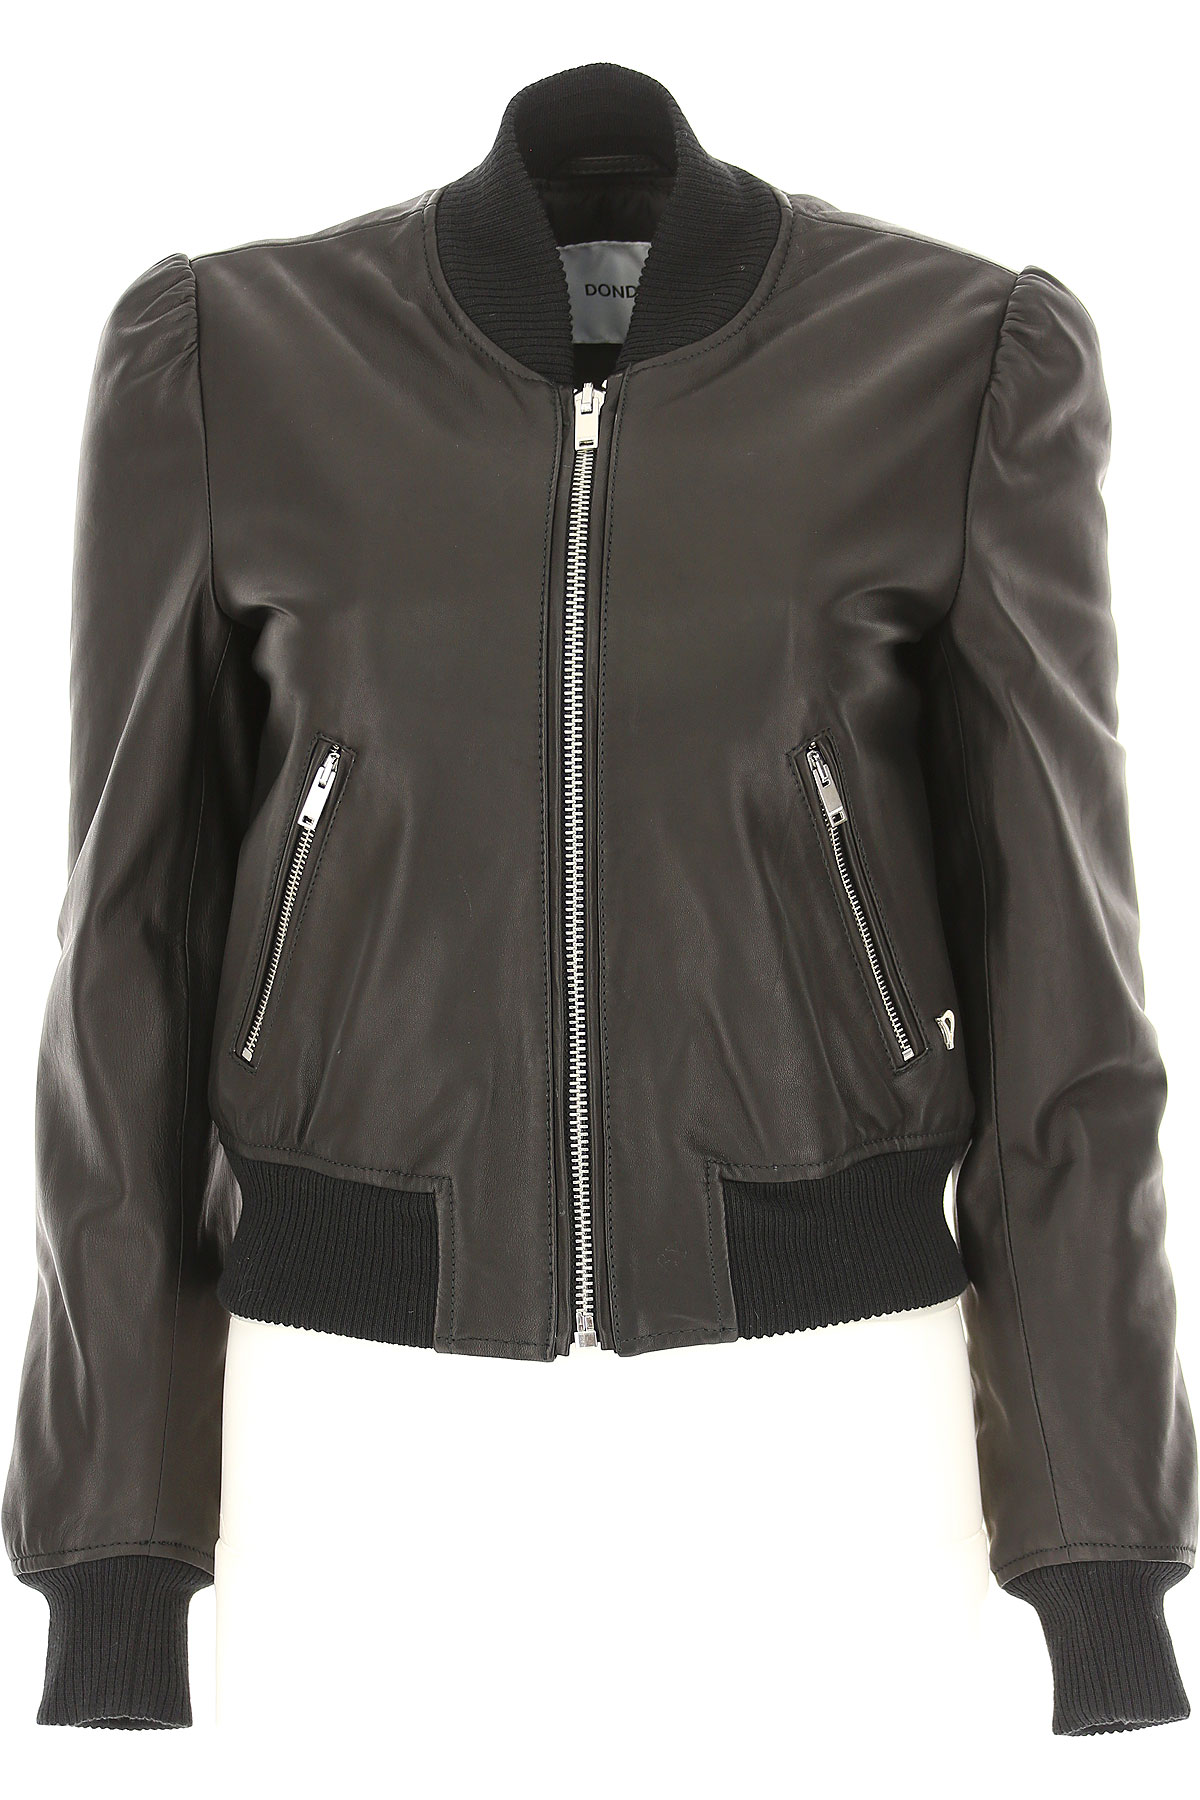 Image of Dondup Leather Jacket for Women, Black, Leather, 2017, 10 2 4 6 8